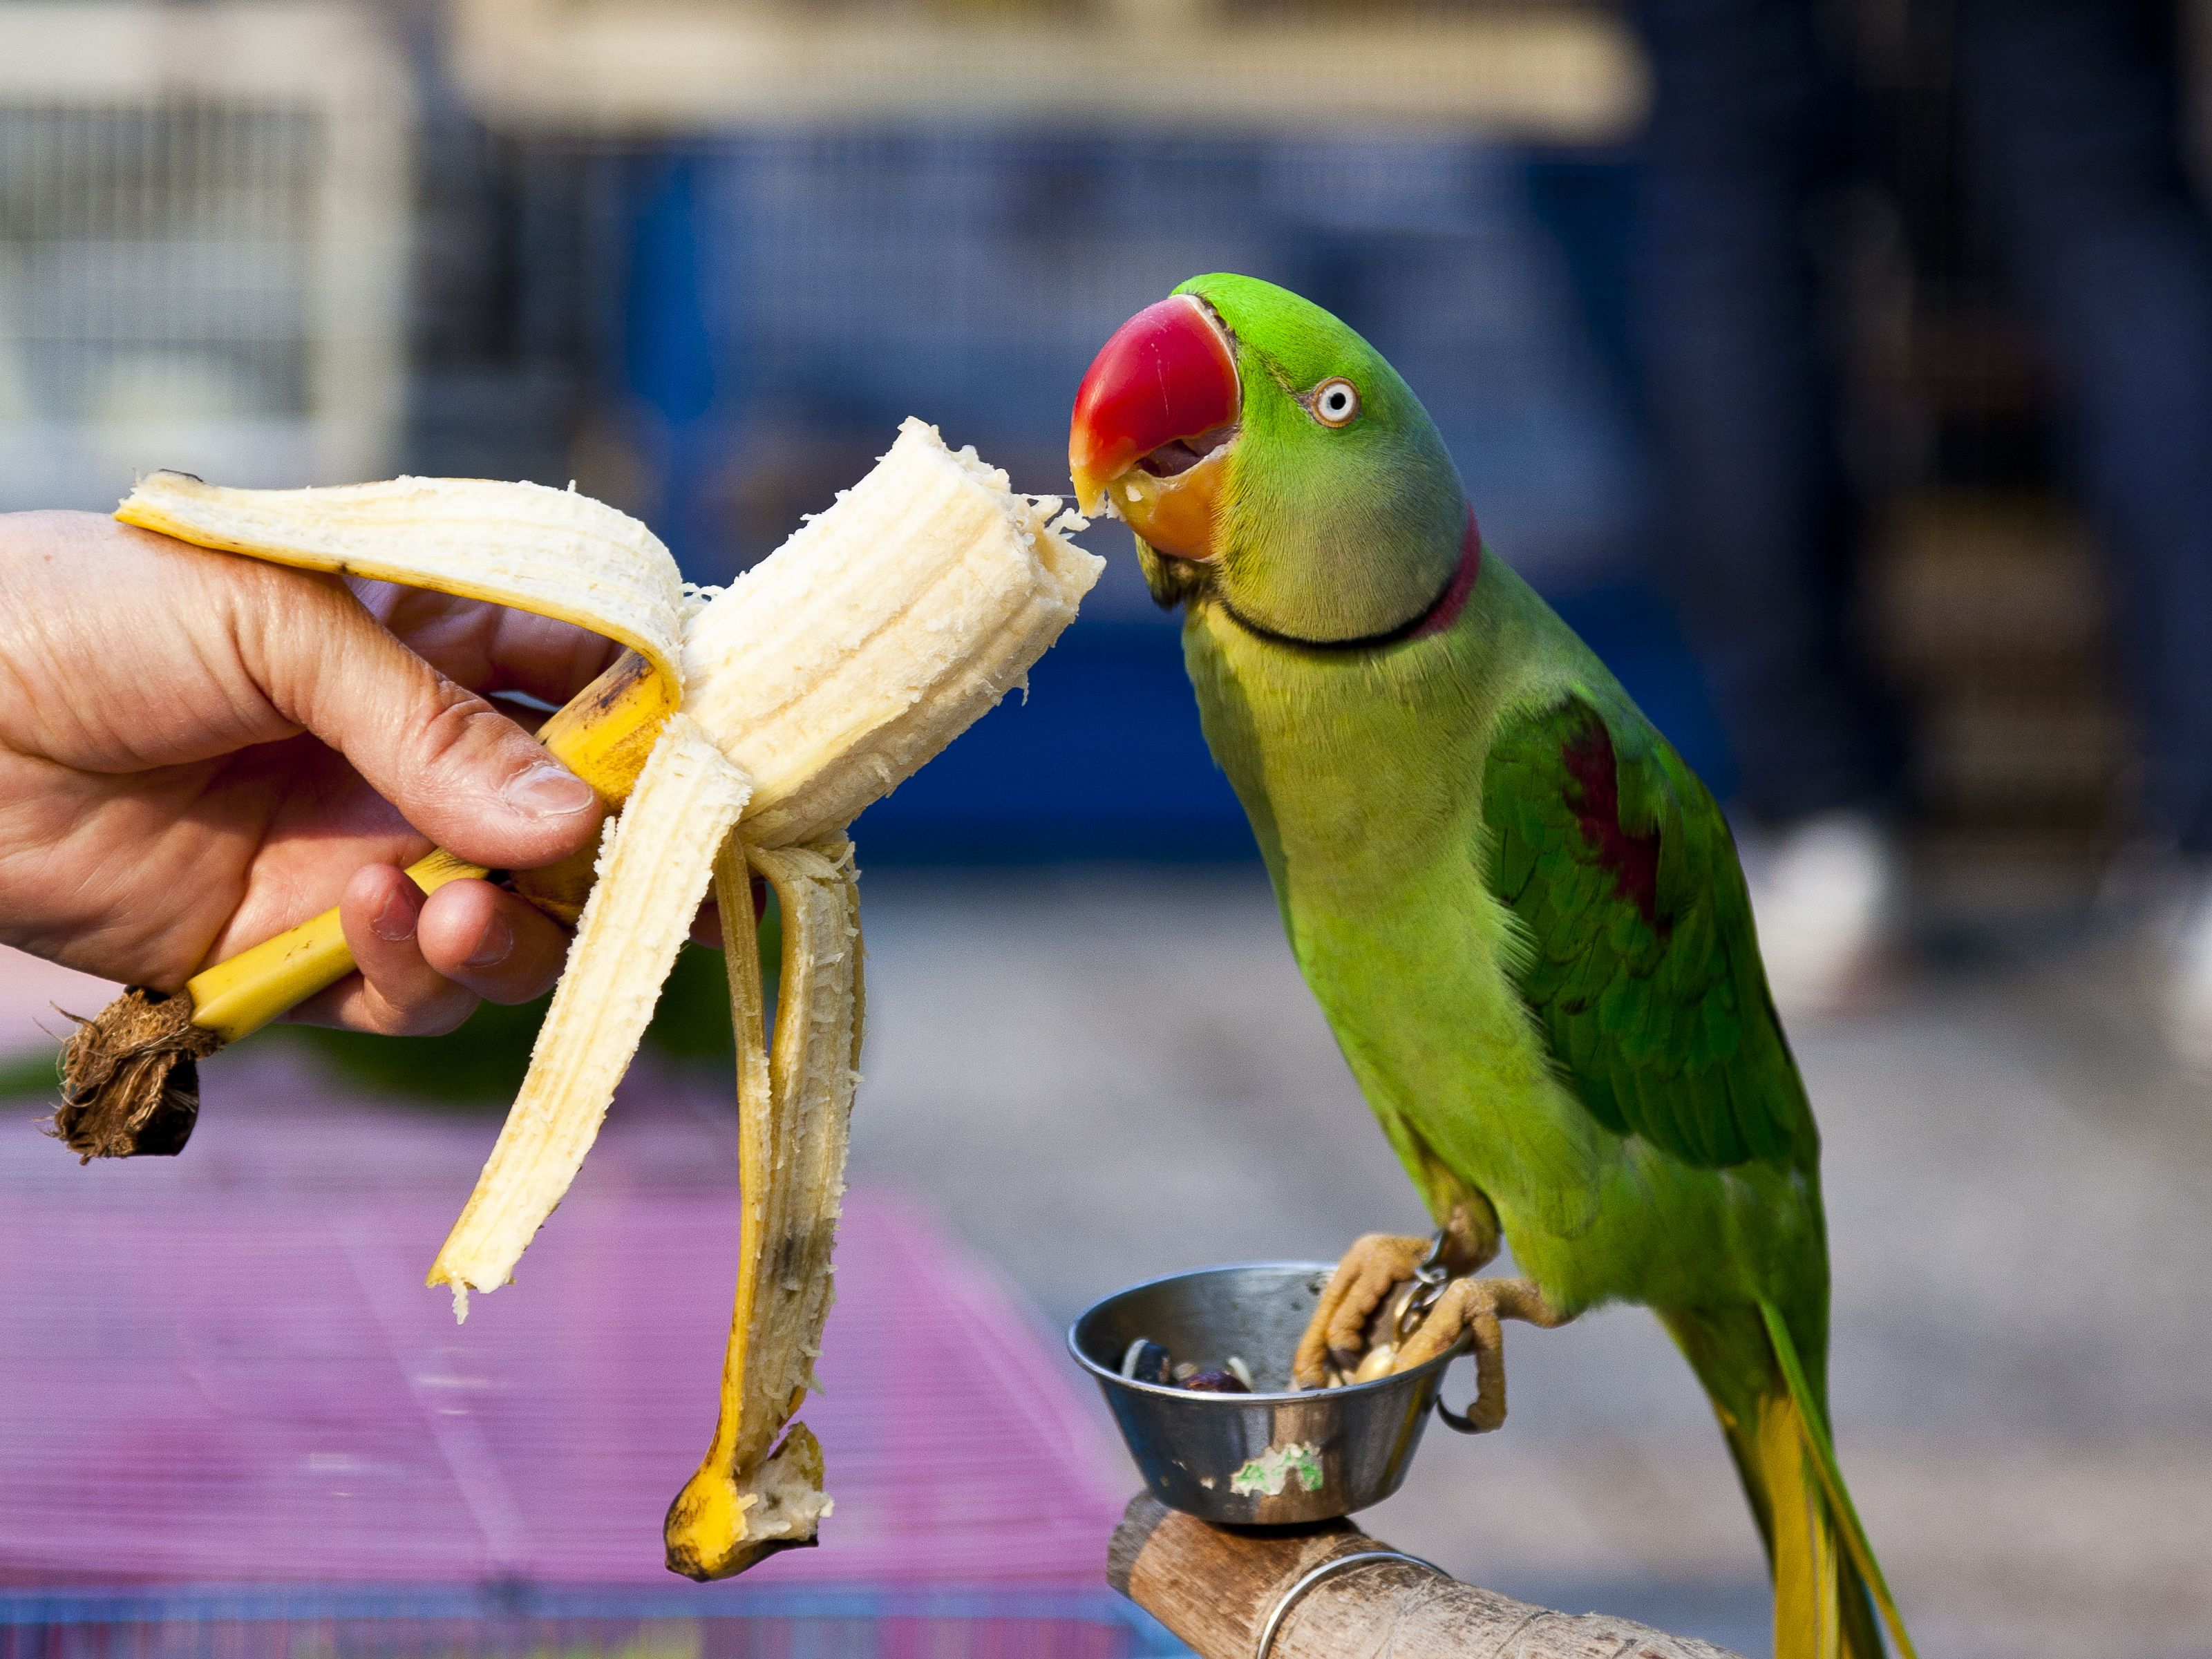 what do parrots need in their diet